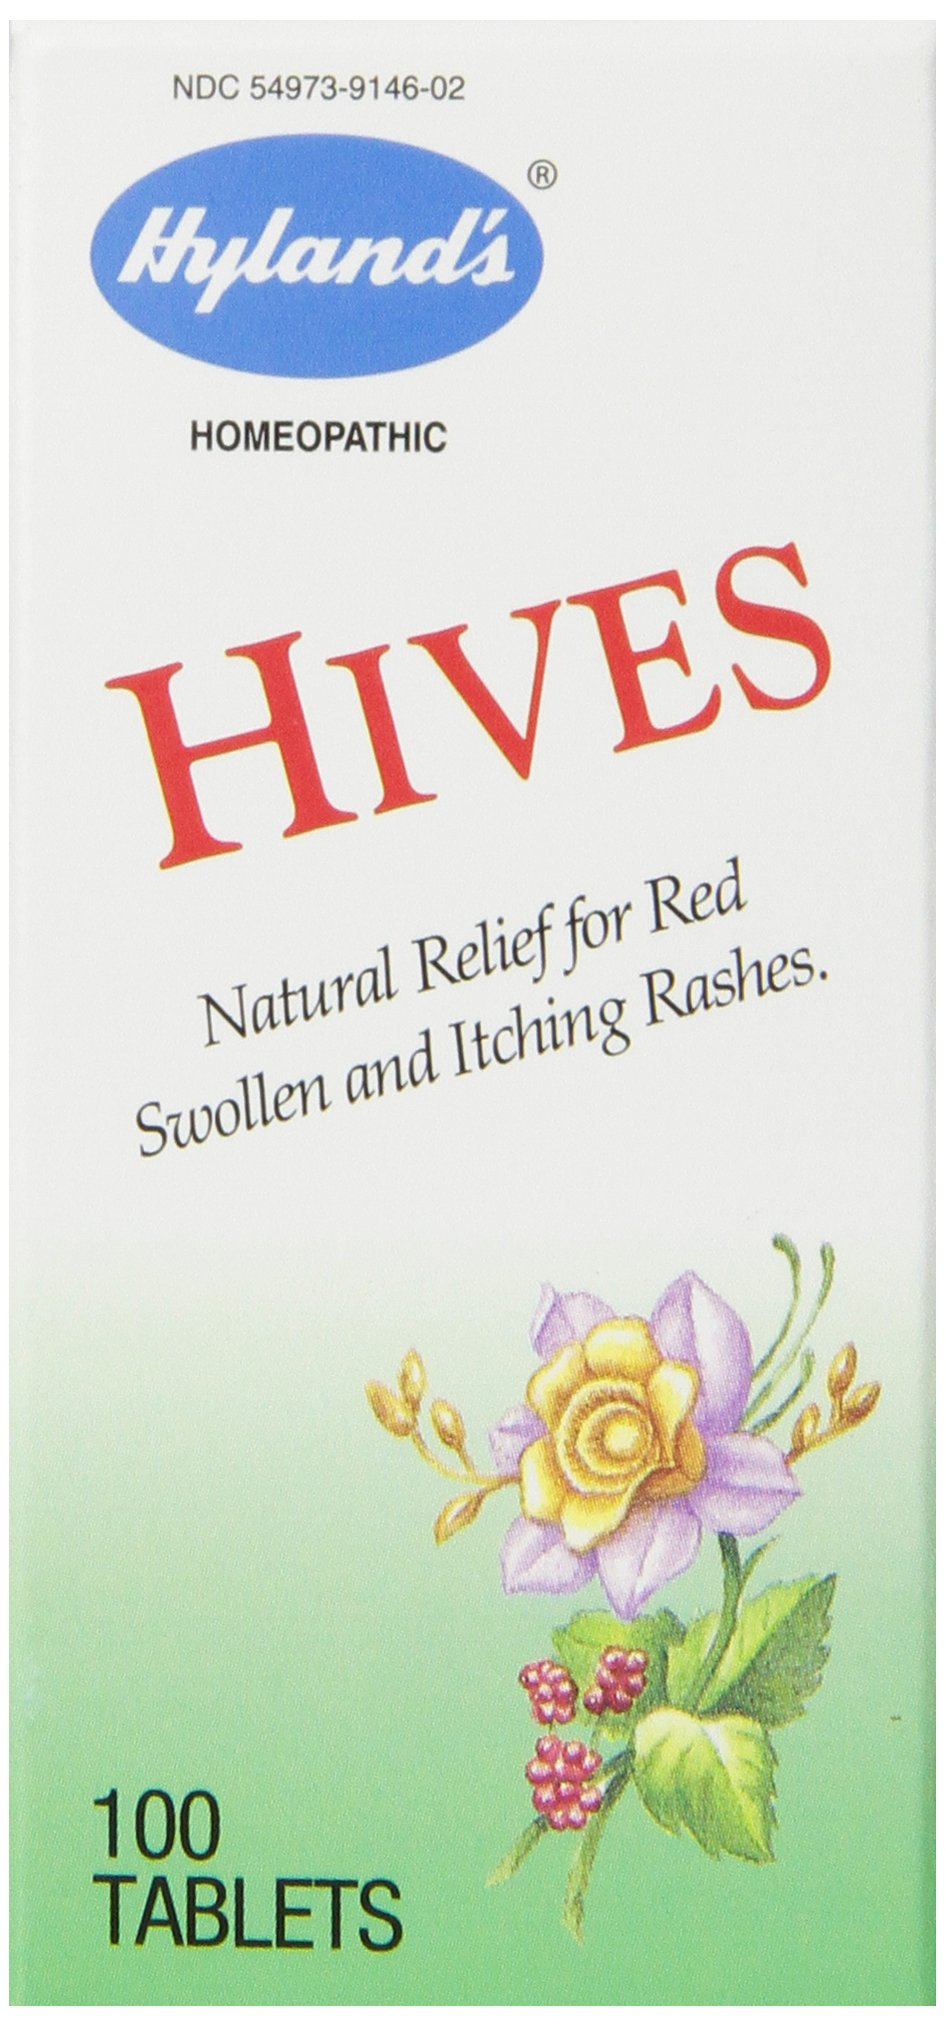 Hyland's Hives Natural Relief for Red Swollen and Itching Rashes 100 Tablets